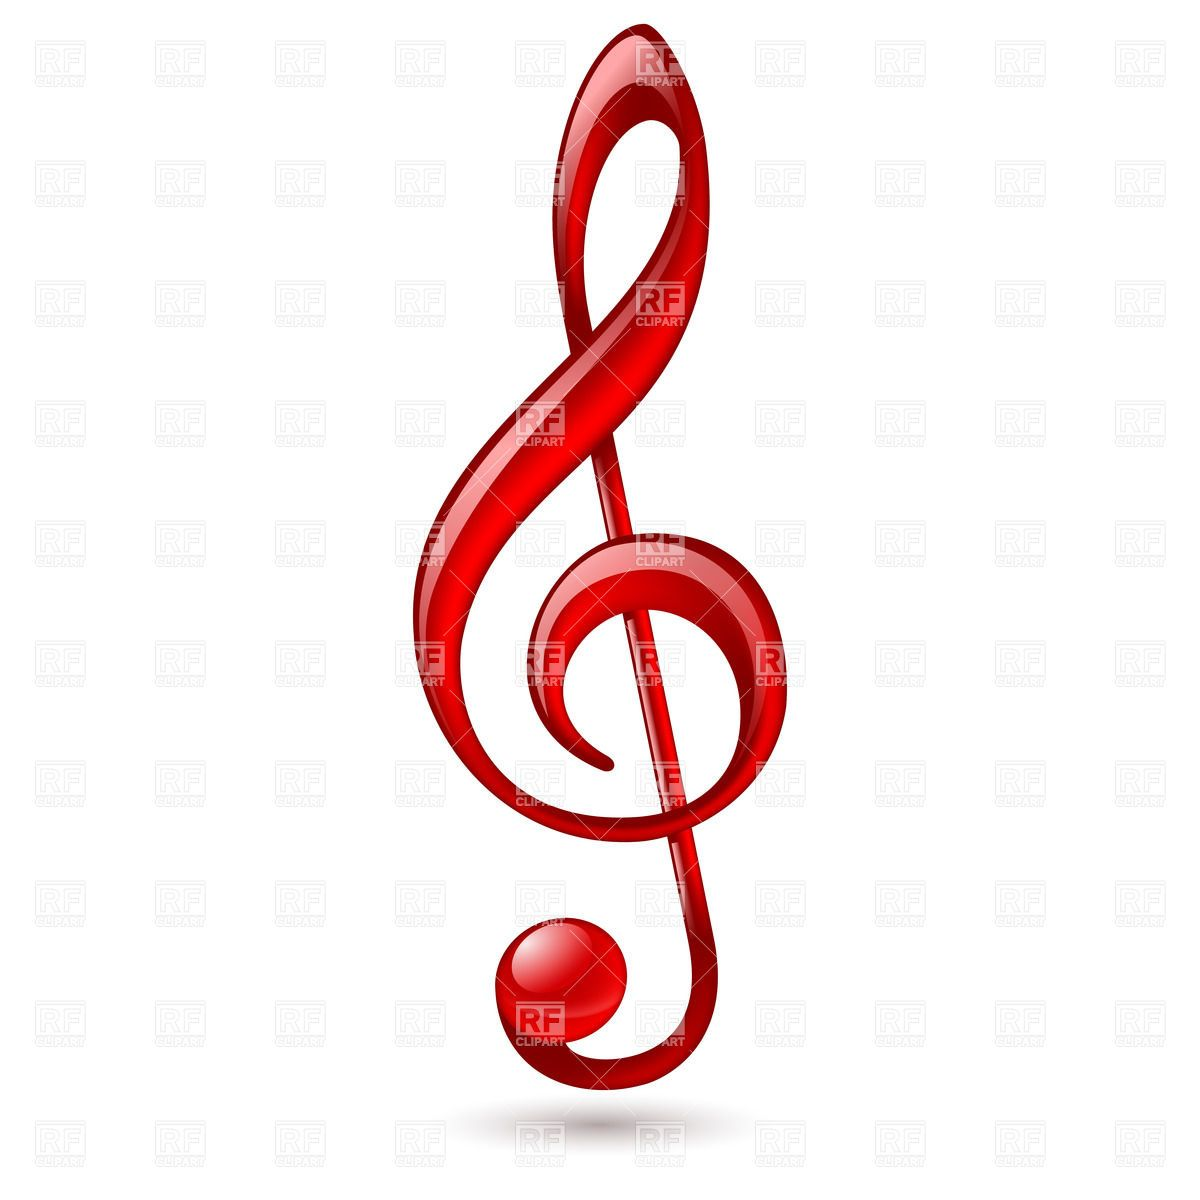 Shiny red treble clef on white background download royalty free music notes twisted into clef royalty free vector clip art image rfclipart voltagebd Images